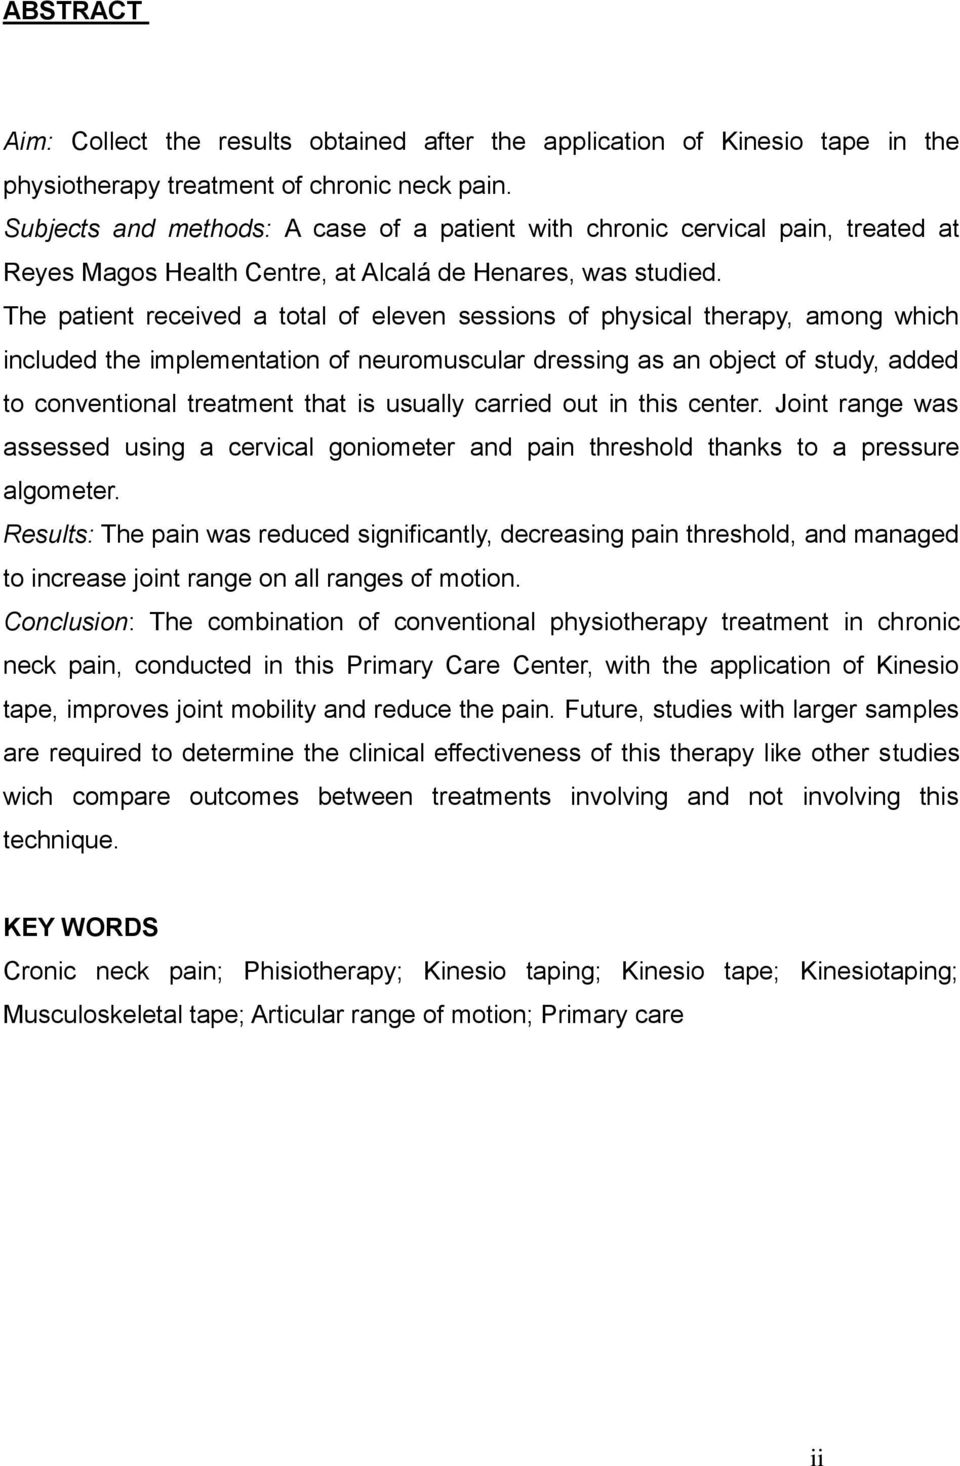 The patient received a total of eleven sessions of physical therapy, among which included the implementation of neuromuscular dressing as an object of study, added to conventional treatment that is